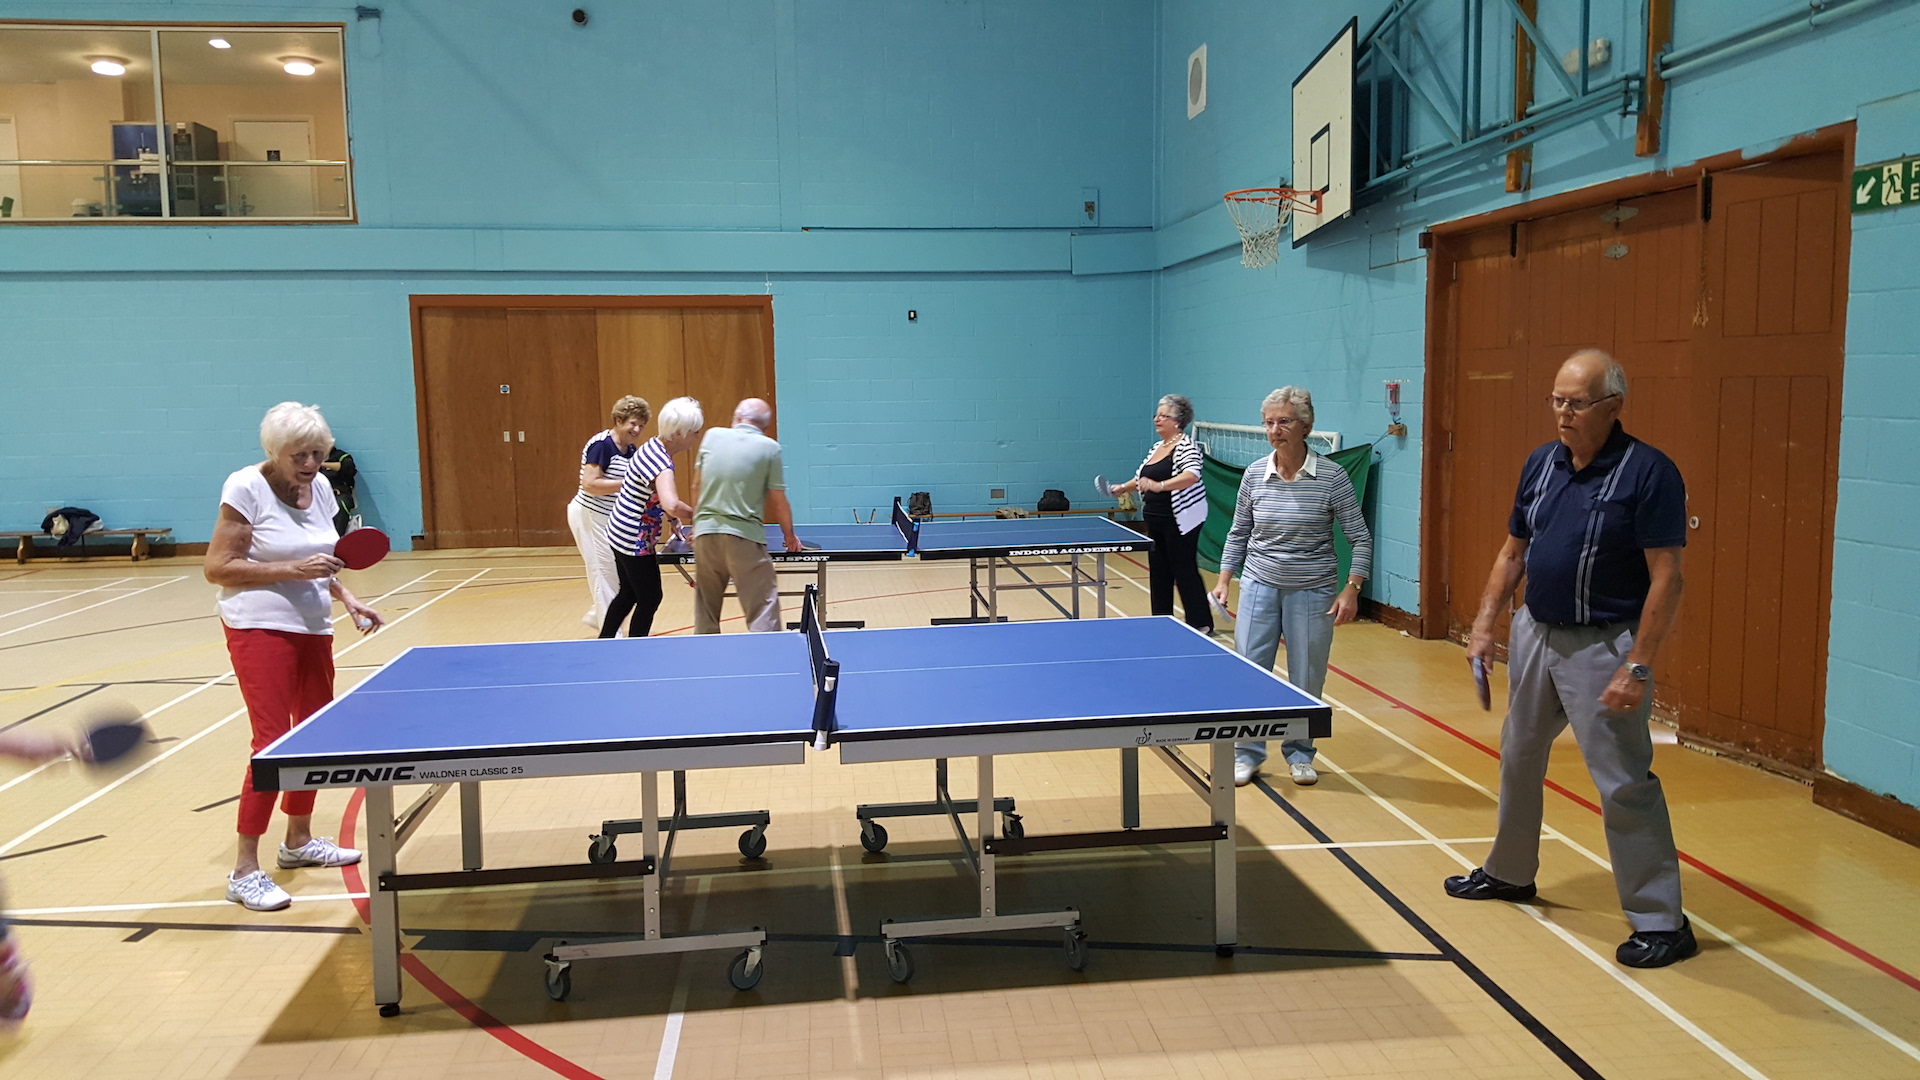 Enjoying an afternoon of Table Tennis